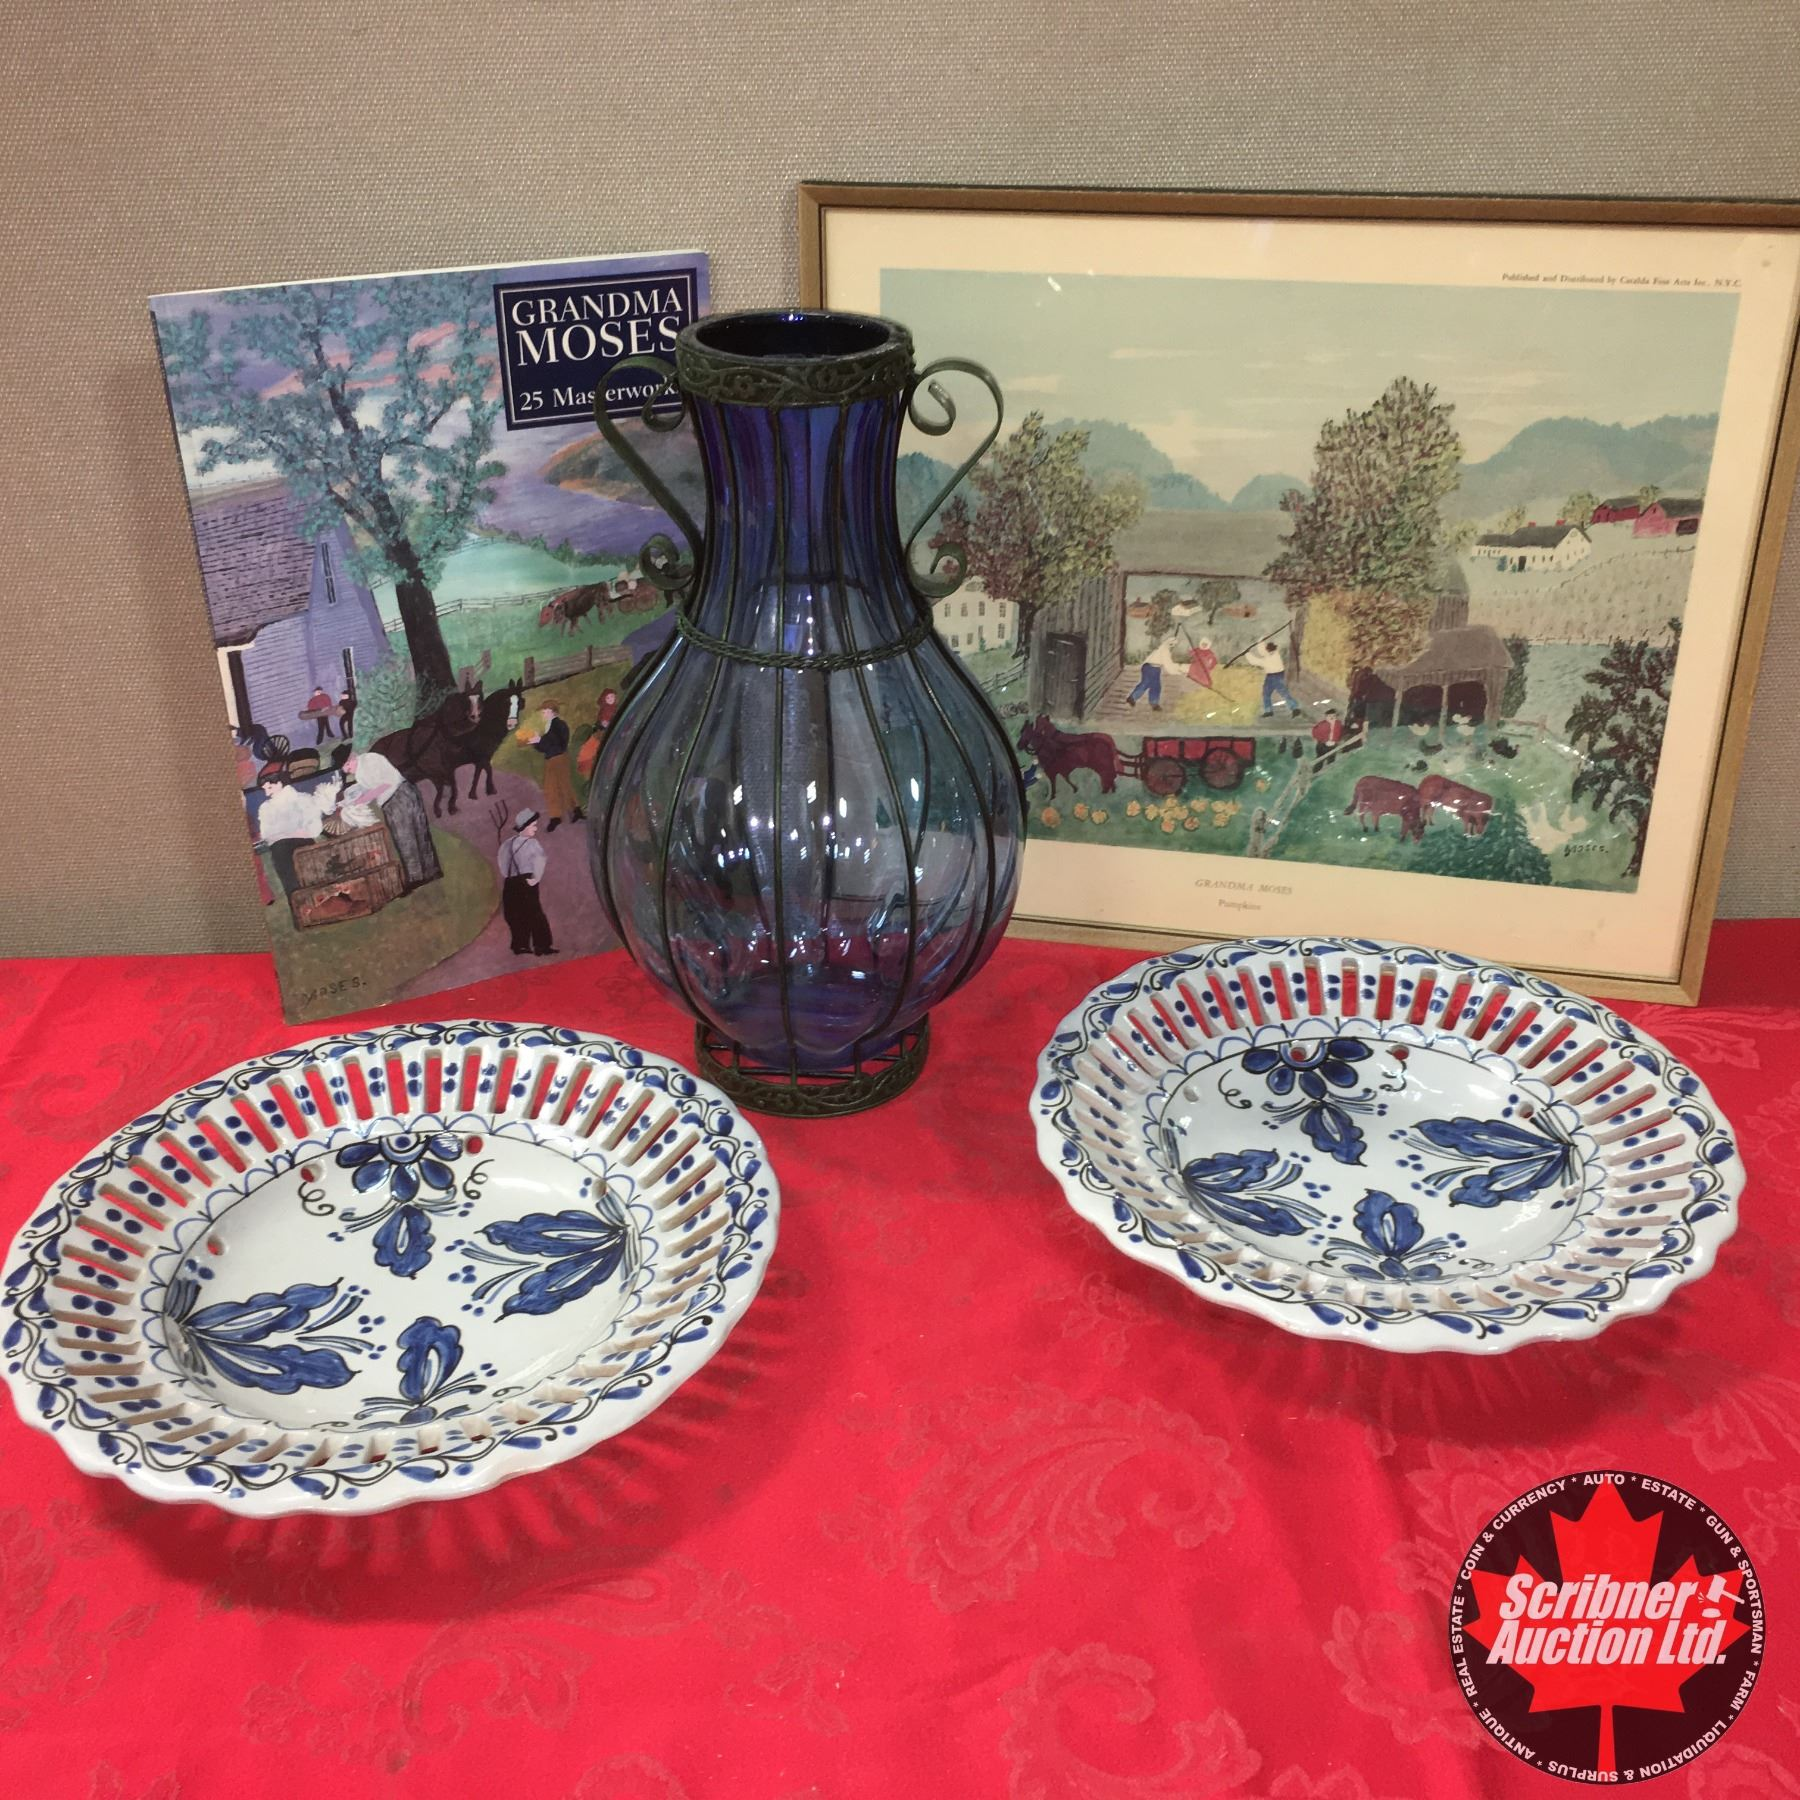 Large Blue Vase 2 Blue Wall Hanging Plates Grandma Moses Book Framed Picture